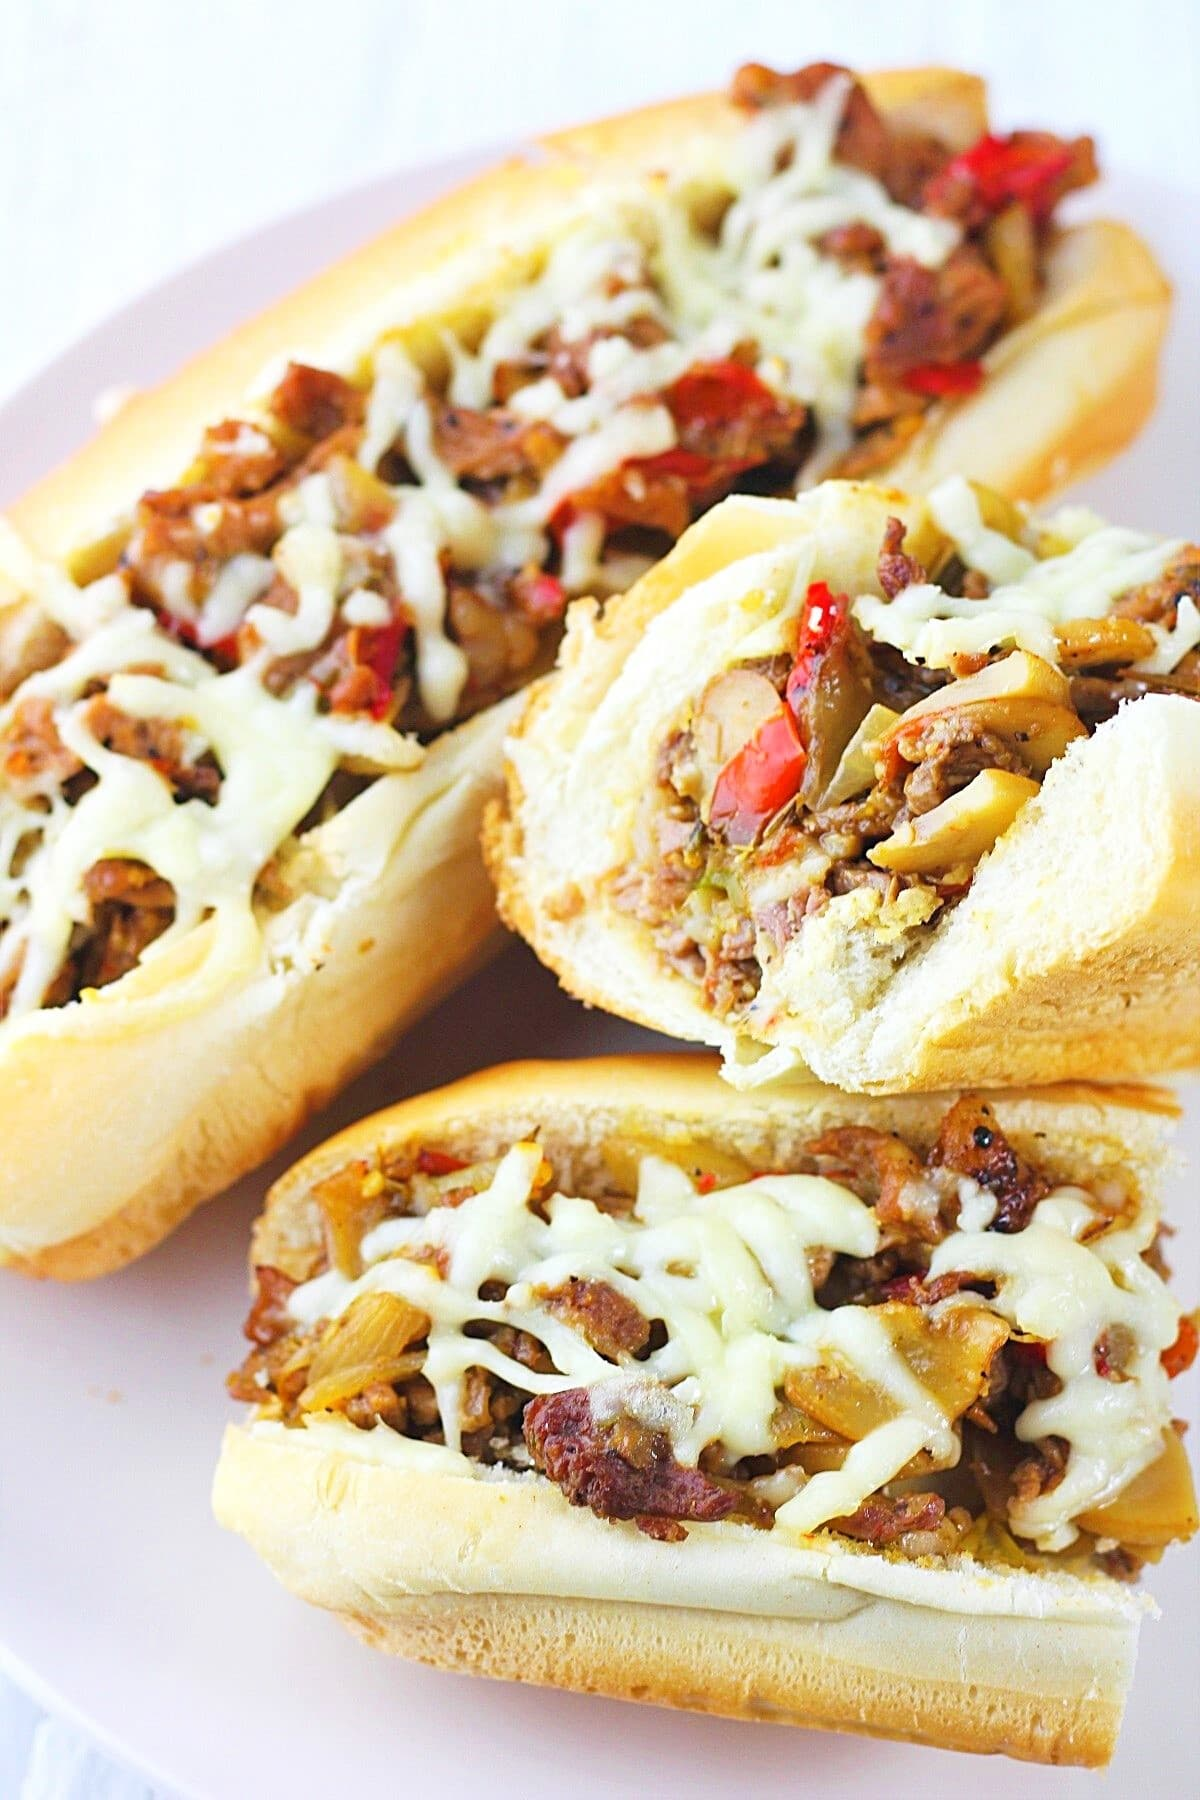 two cheesesteaks with mushrooms, onions and peppers on a white plate, one of them cut in half so you can see the inside